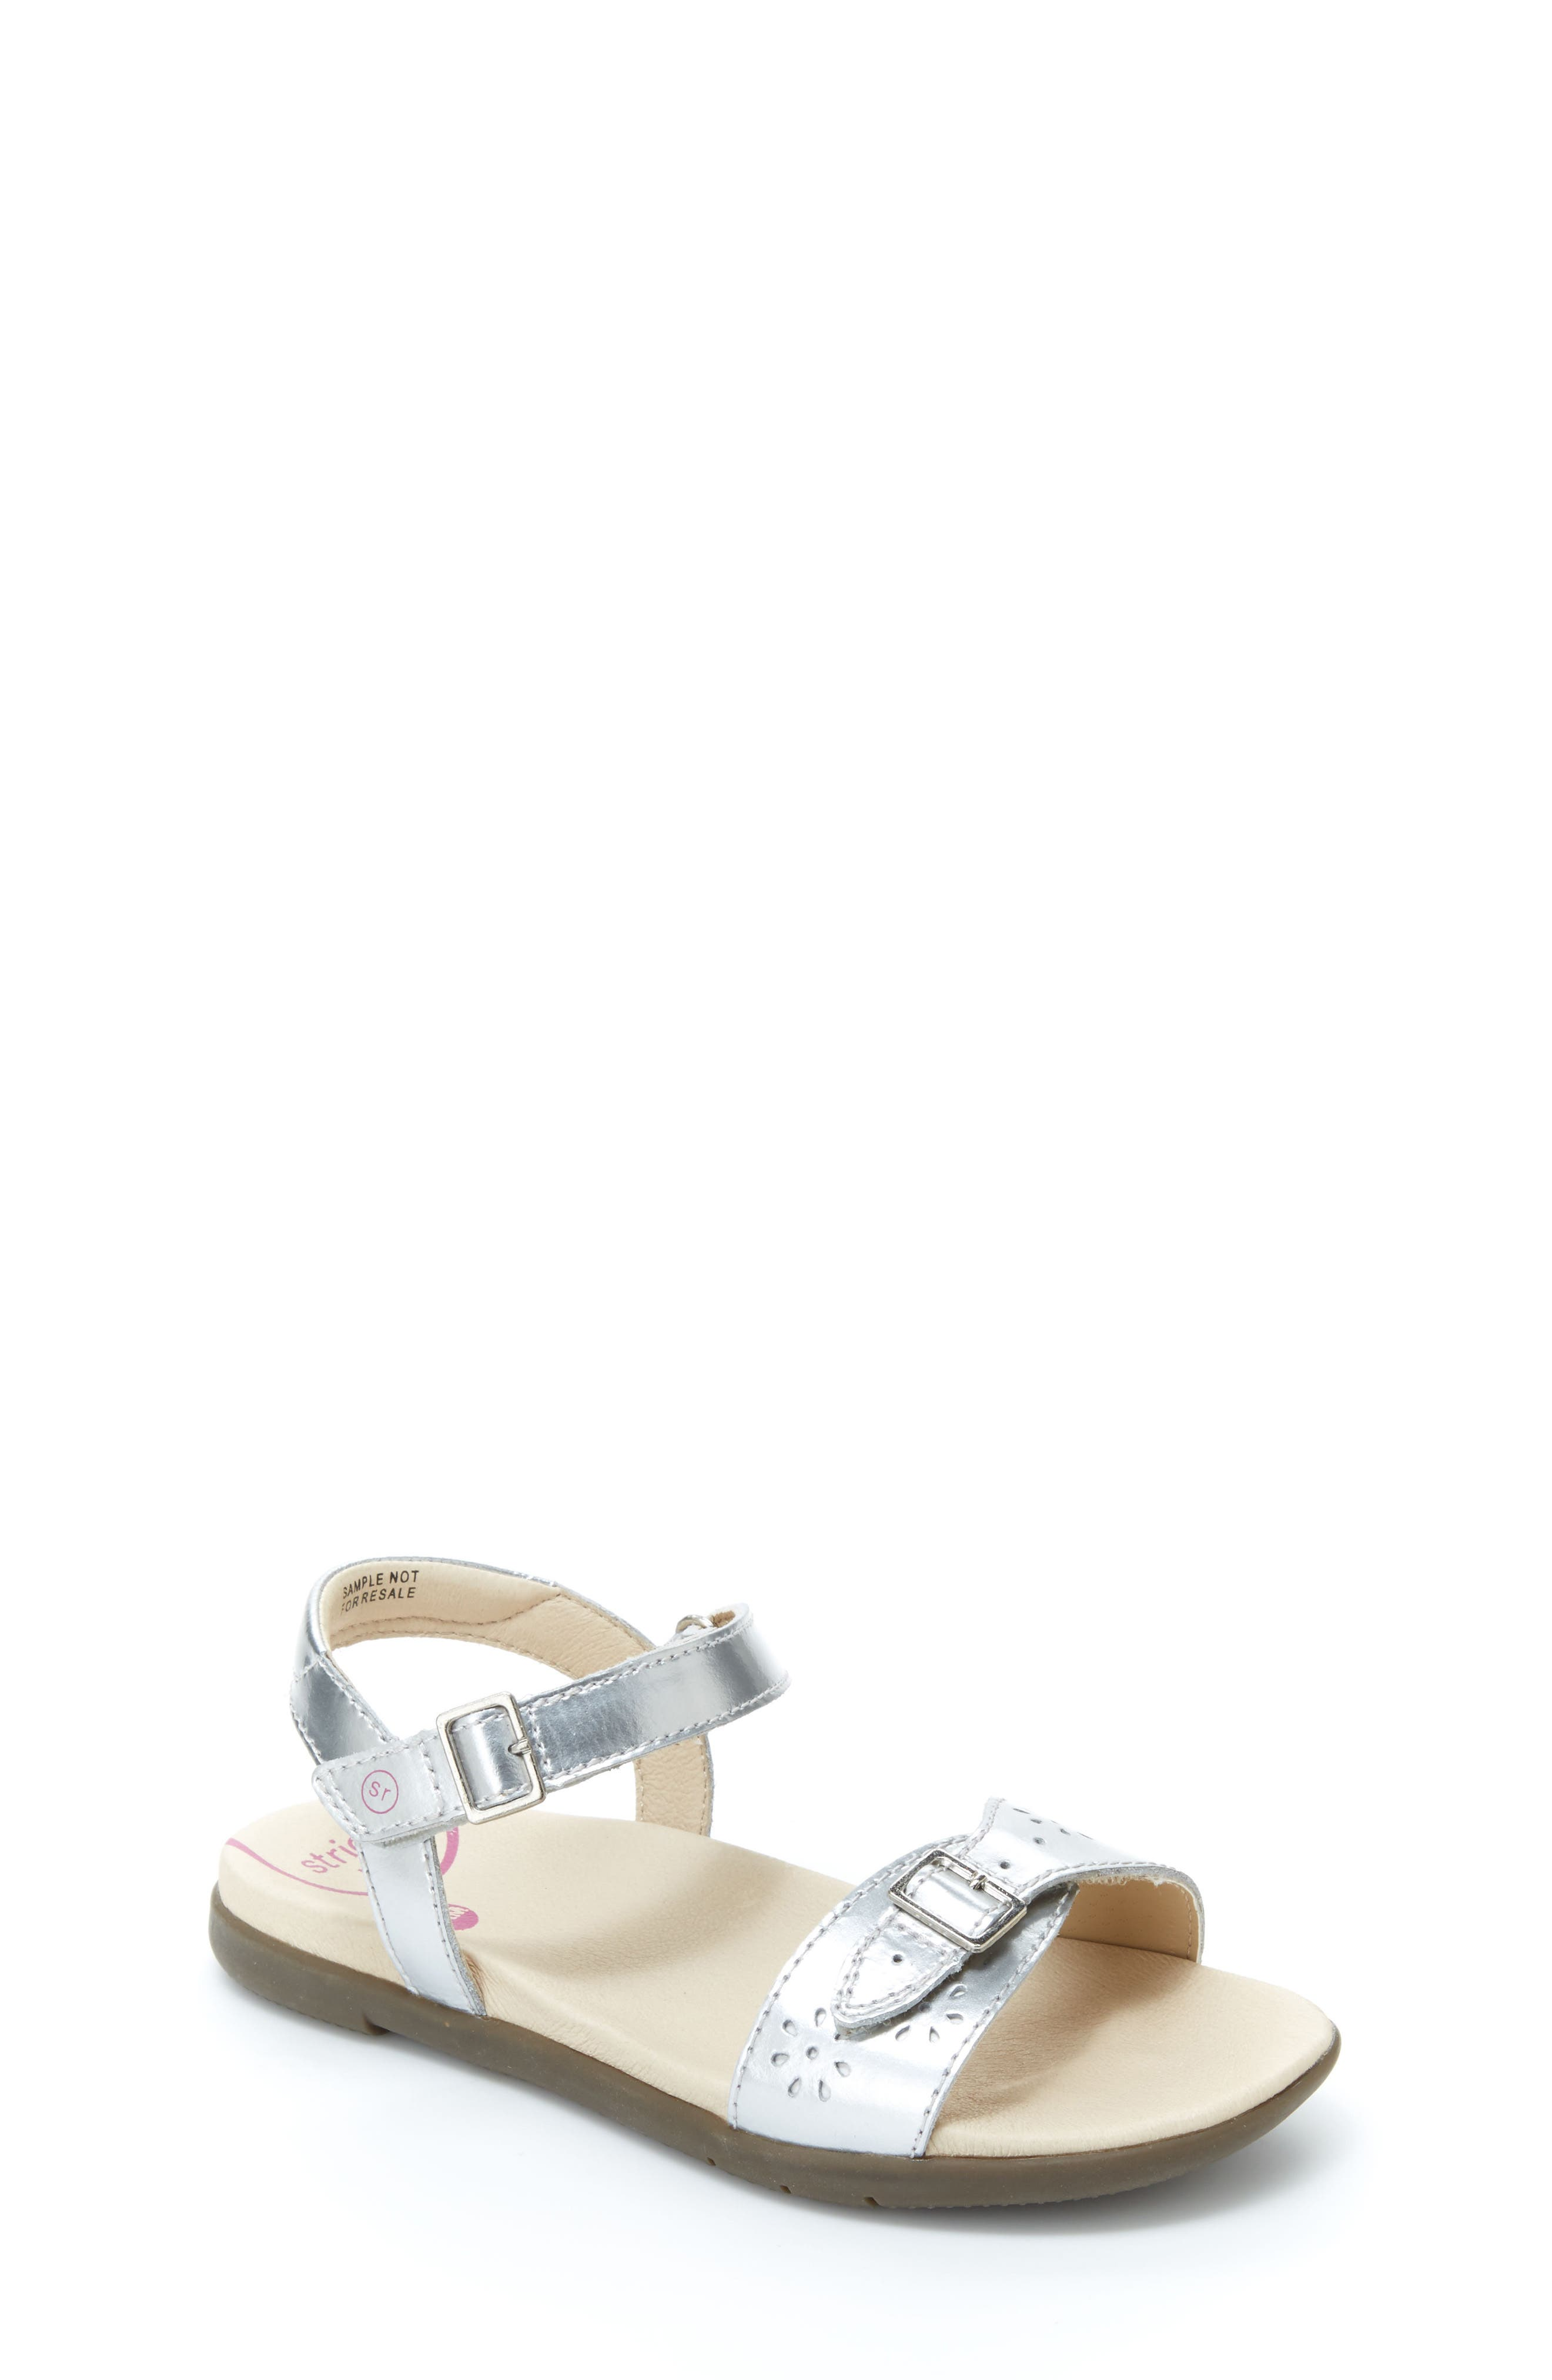 Roxanna Sandal,                         Main,                         color, Silver Patent Leather